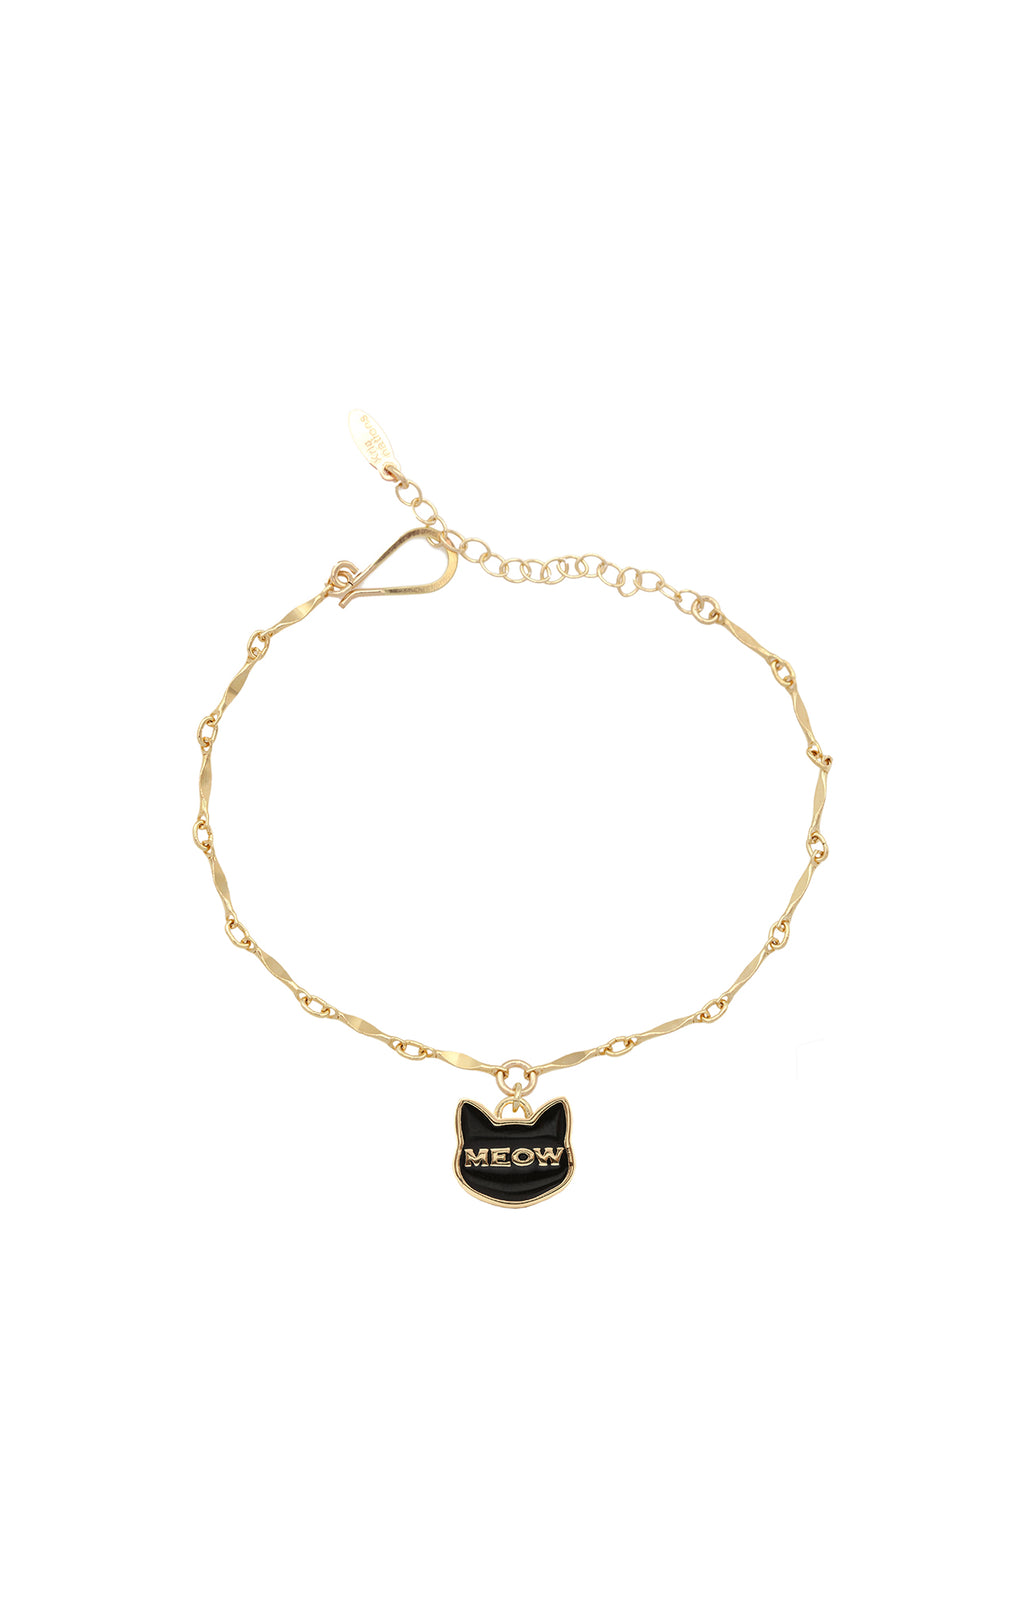 KRIS NATIONS 'MEOW' ENAMEL GOLD CHAIN BRACELET MAIN IMAGE